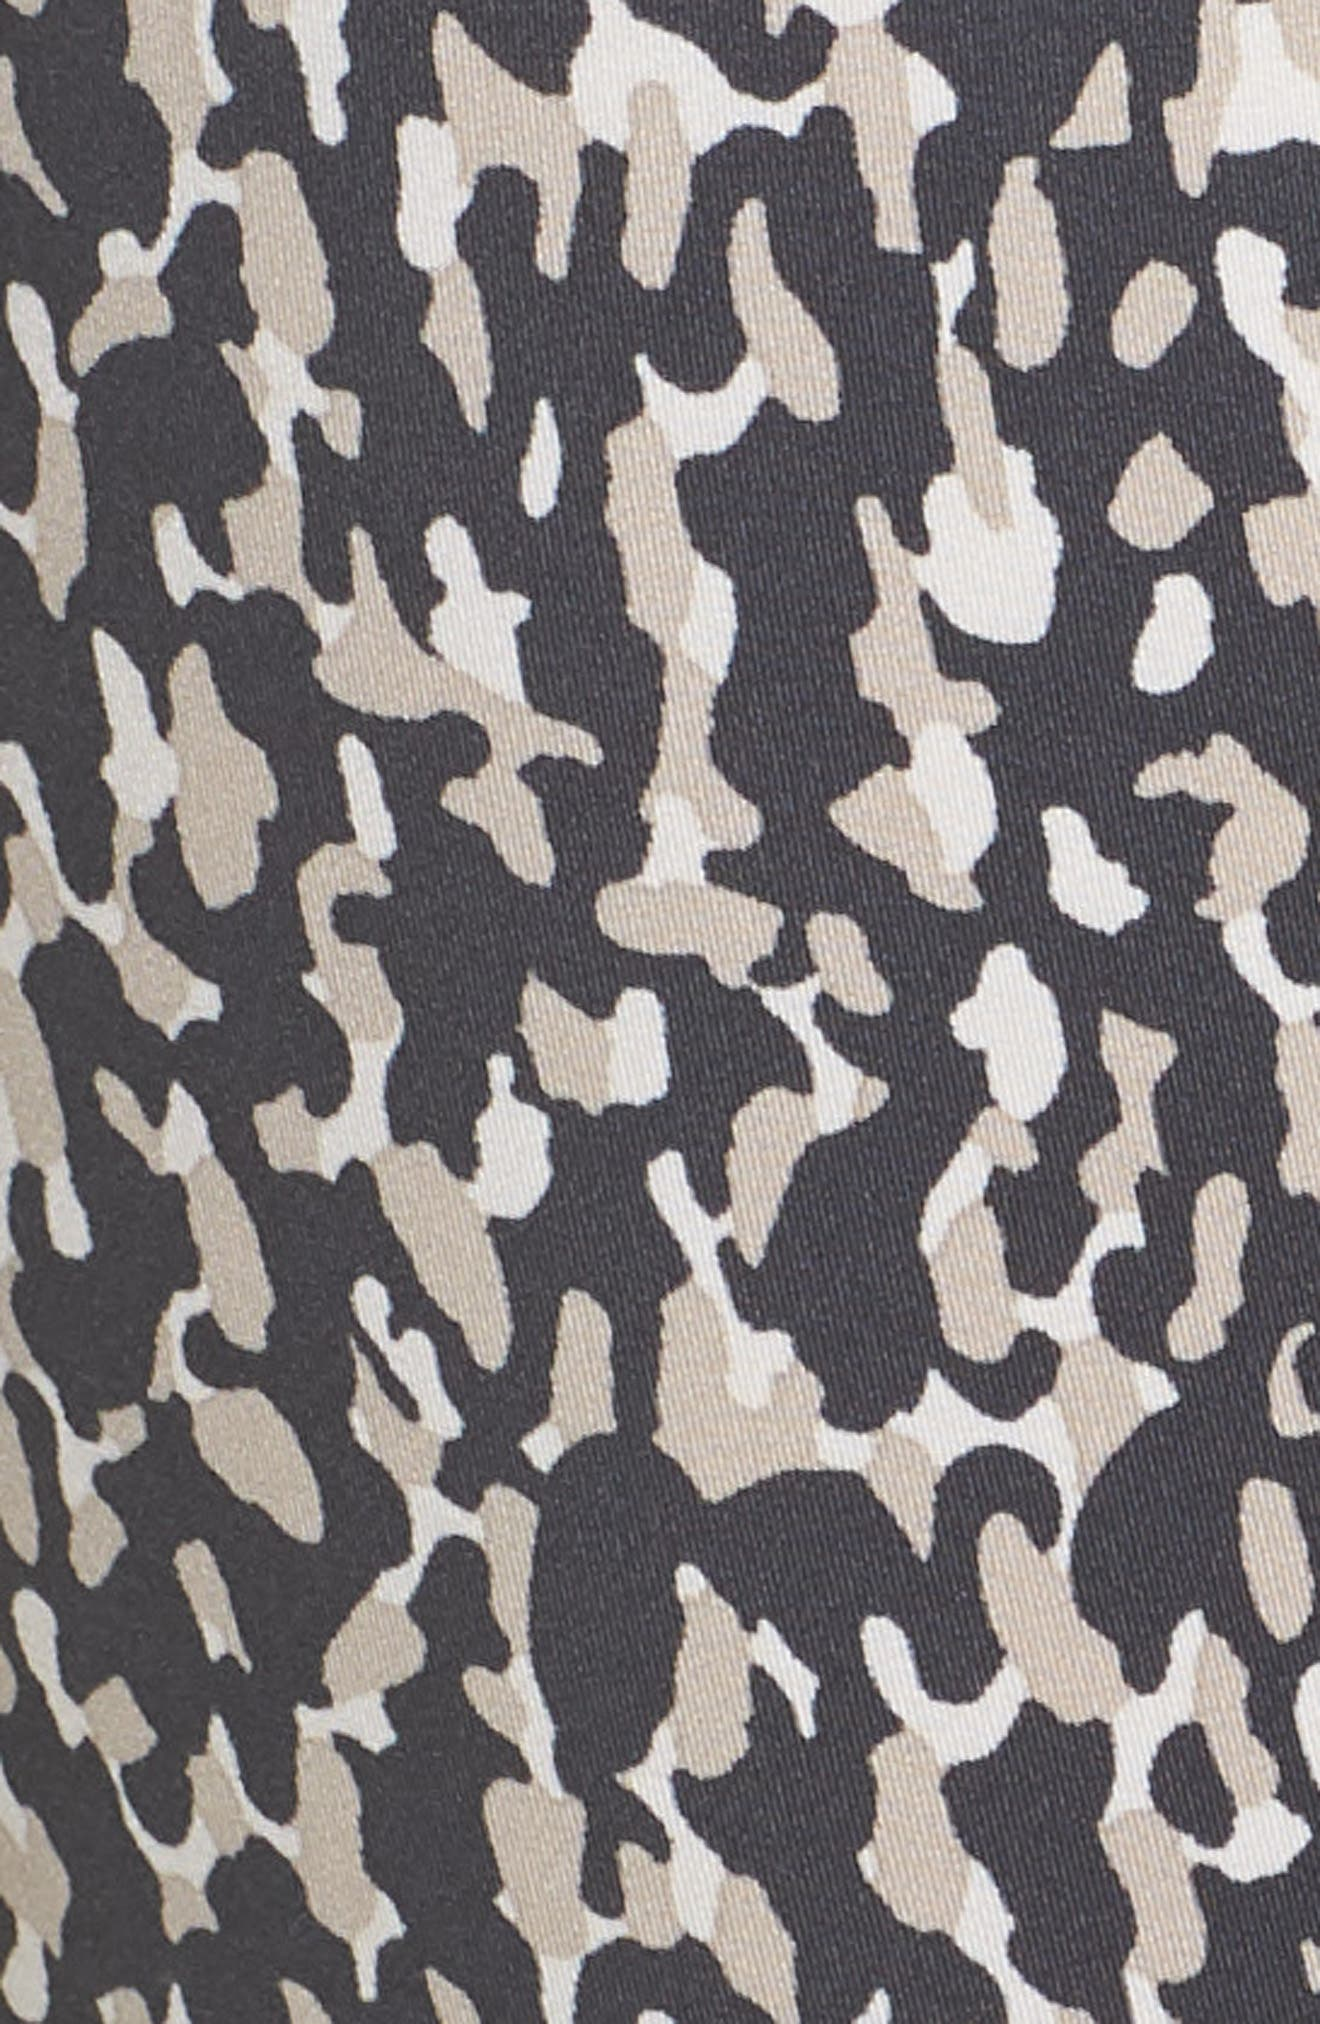 Leopard Camo Leggings,                             Alternate thumbnail 3, color,                             Leoflage Aop